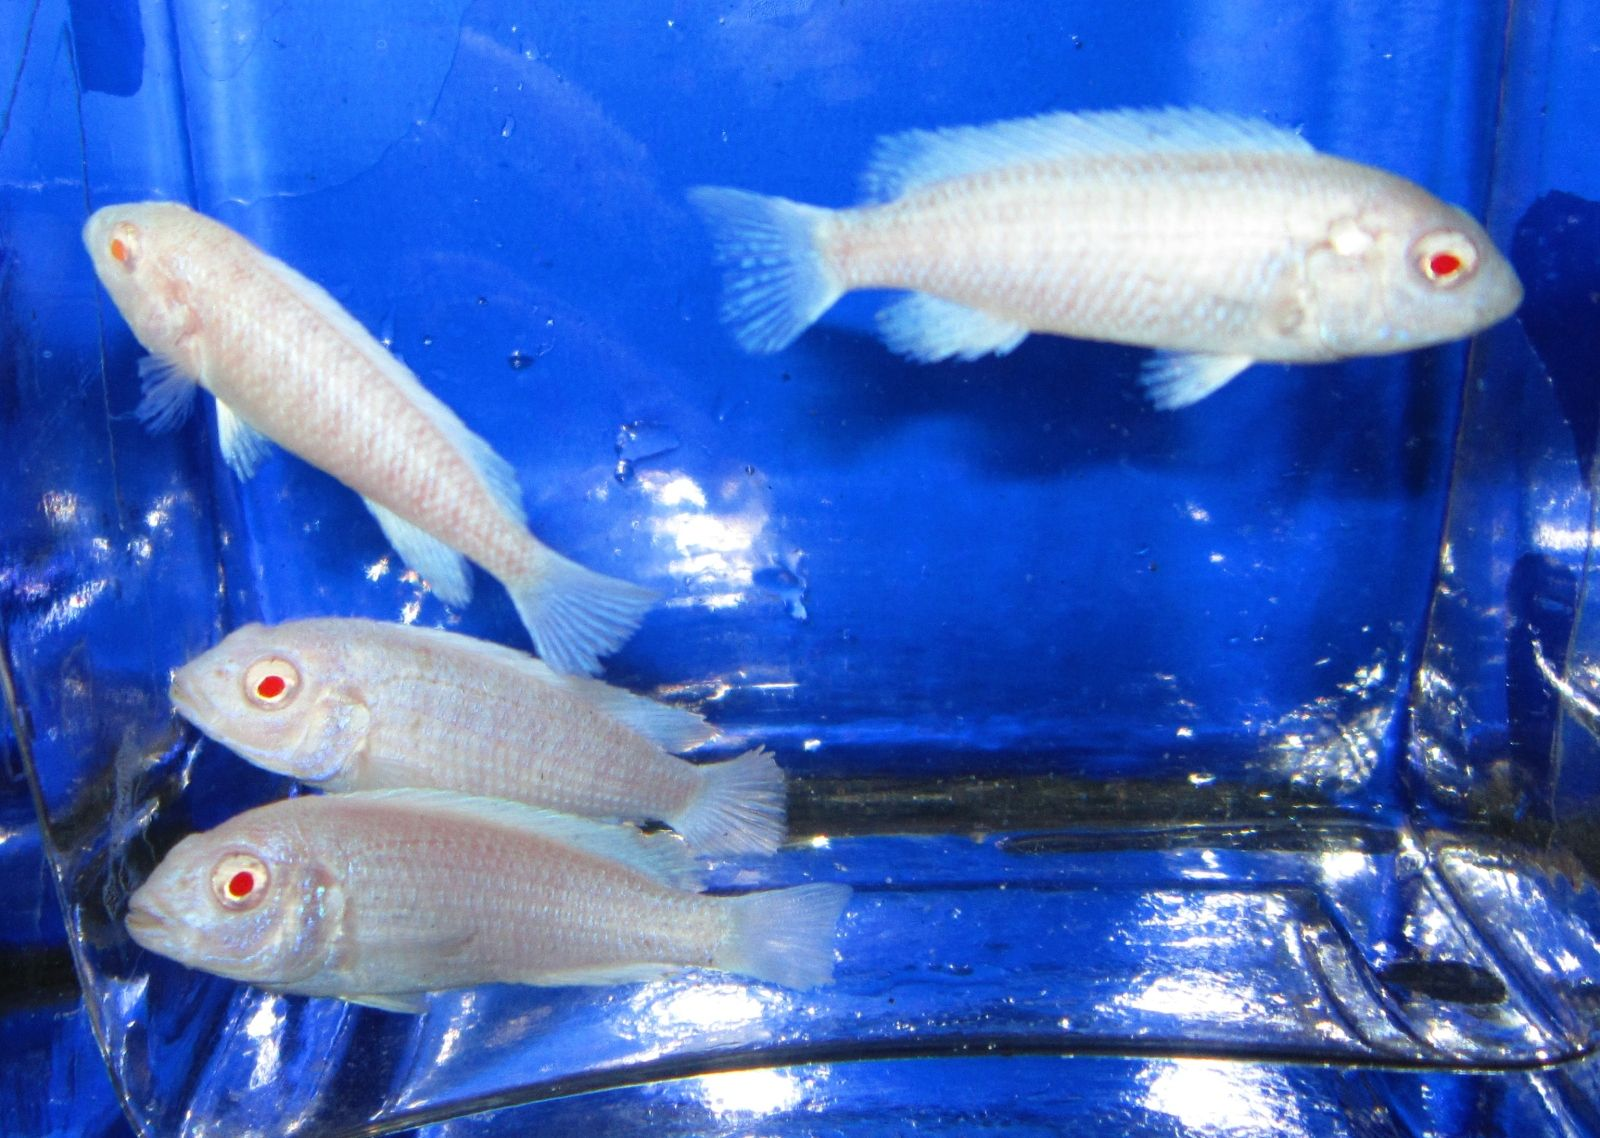 500 freshwater aquarium fish by greg jennings - Snow White Albino Zebra 1 5 African Cichlid For Freshwater Aquarium Fish